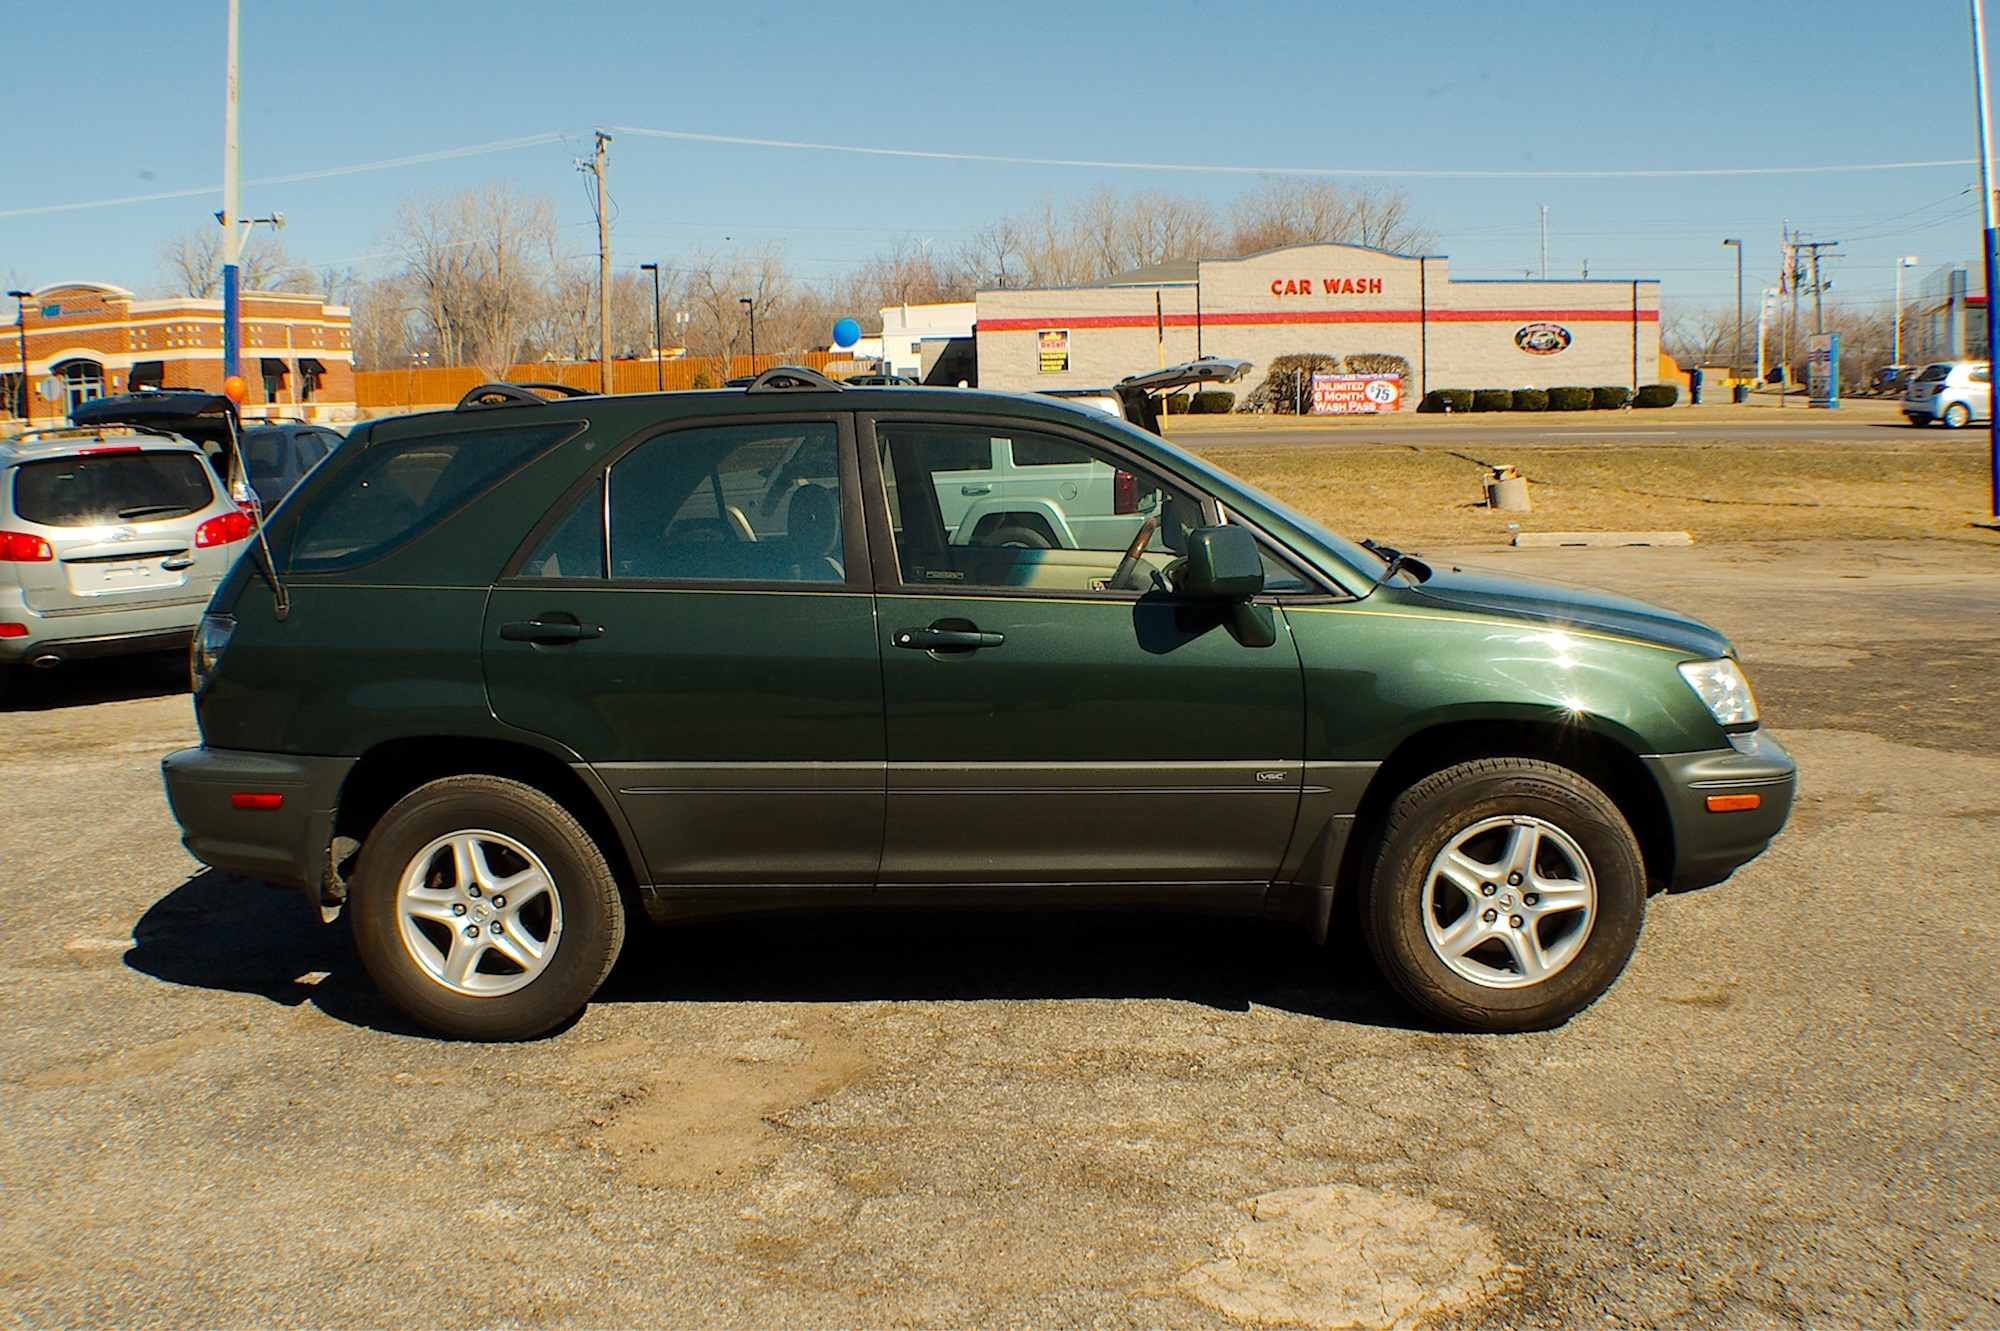 2001 Lexus RX300 Green Used SUV Sale Bannockburn Barrington Beach Park